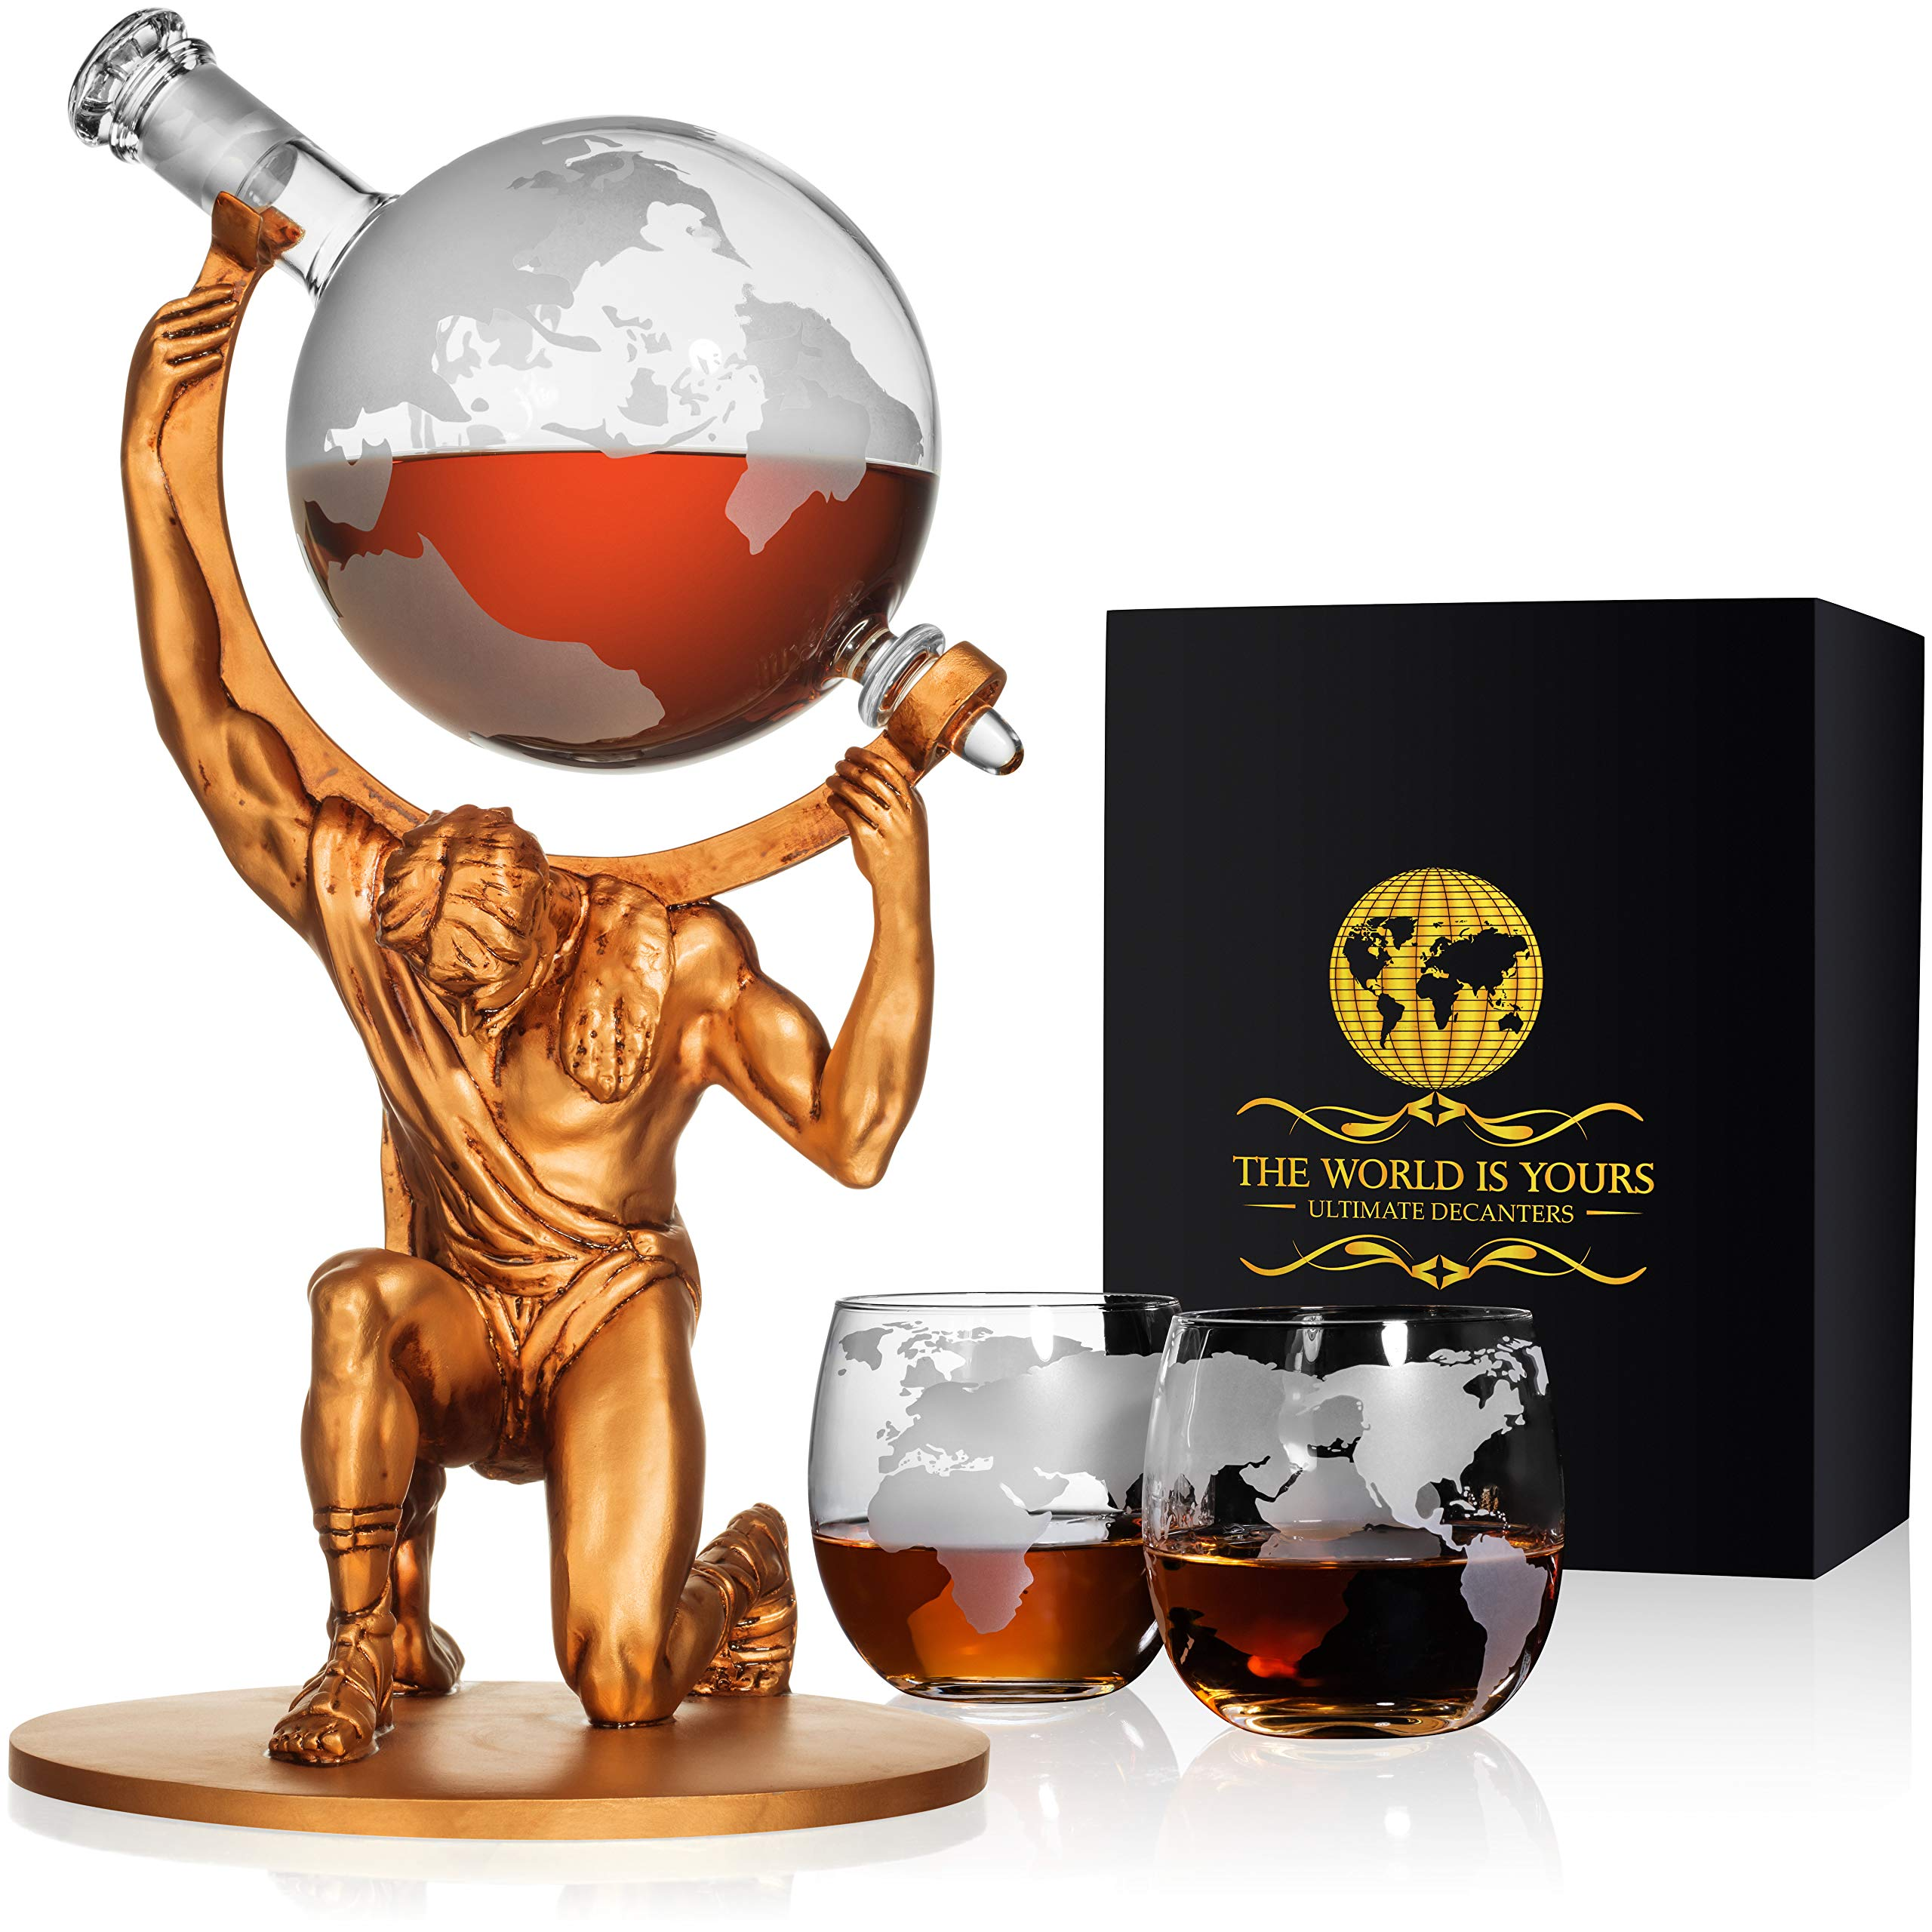 Atlas Man Whiskey Decanter Globe Set - With 2 Etched Globe Whiskey Glasses - For Whiskey, Scotch, Bourbon, Cognac and Brandy - 1000ml by NatureWorks